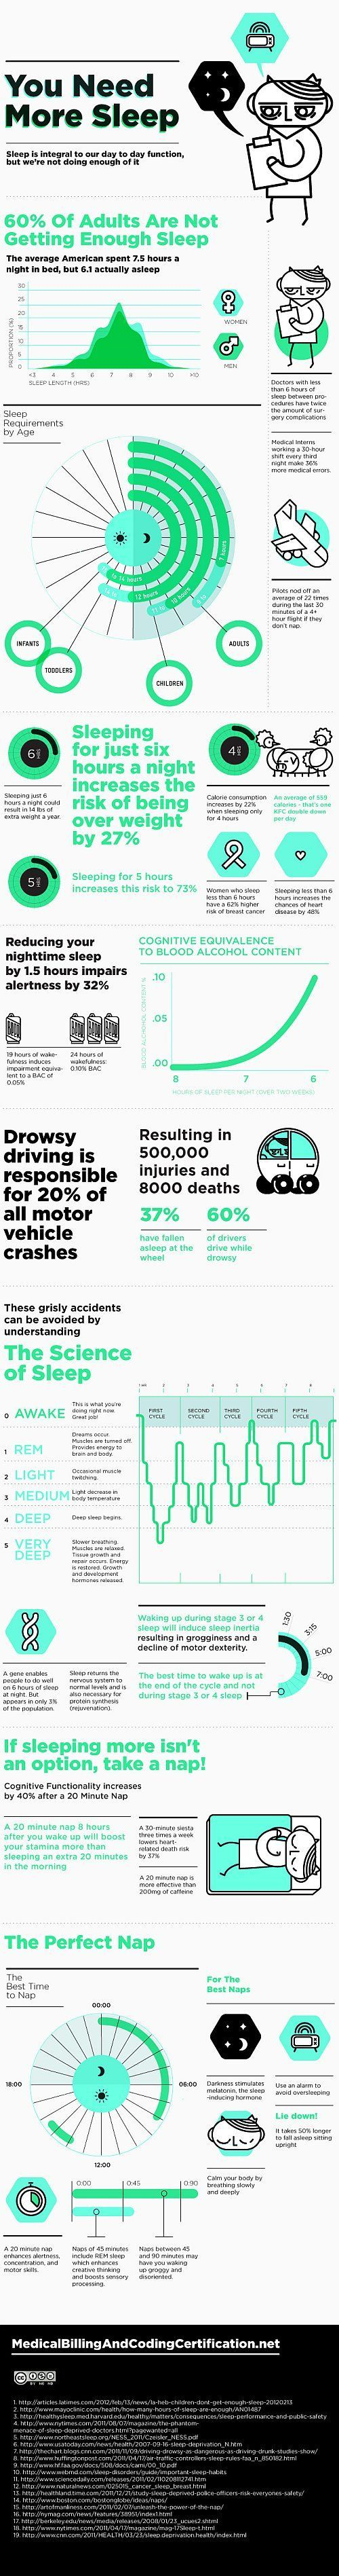 Infographic: You Need More Sleep. What the lack of sleep is doing to your health and your life.